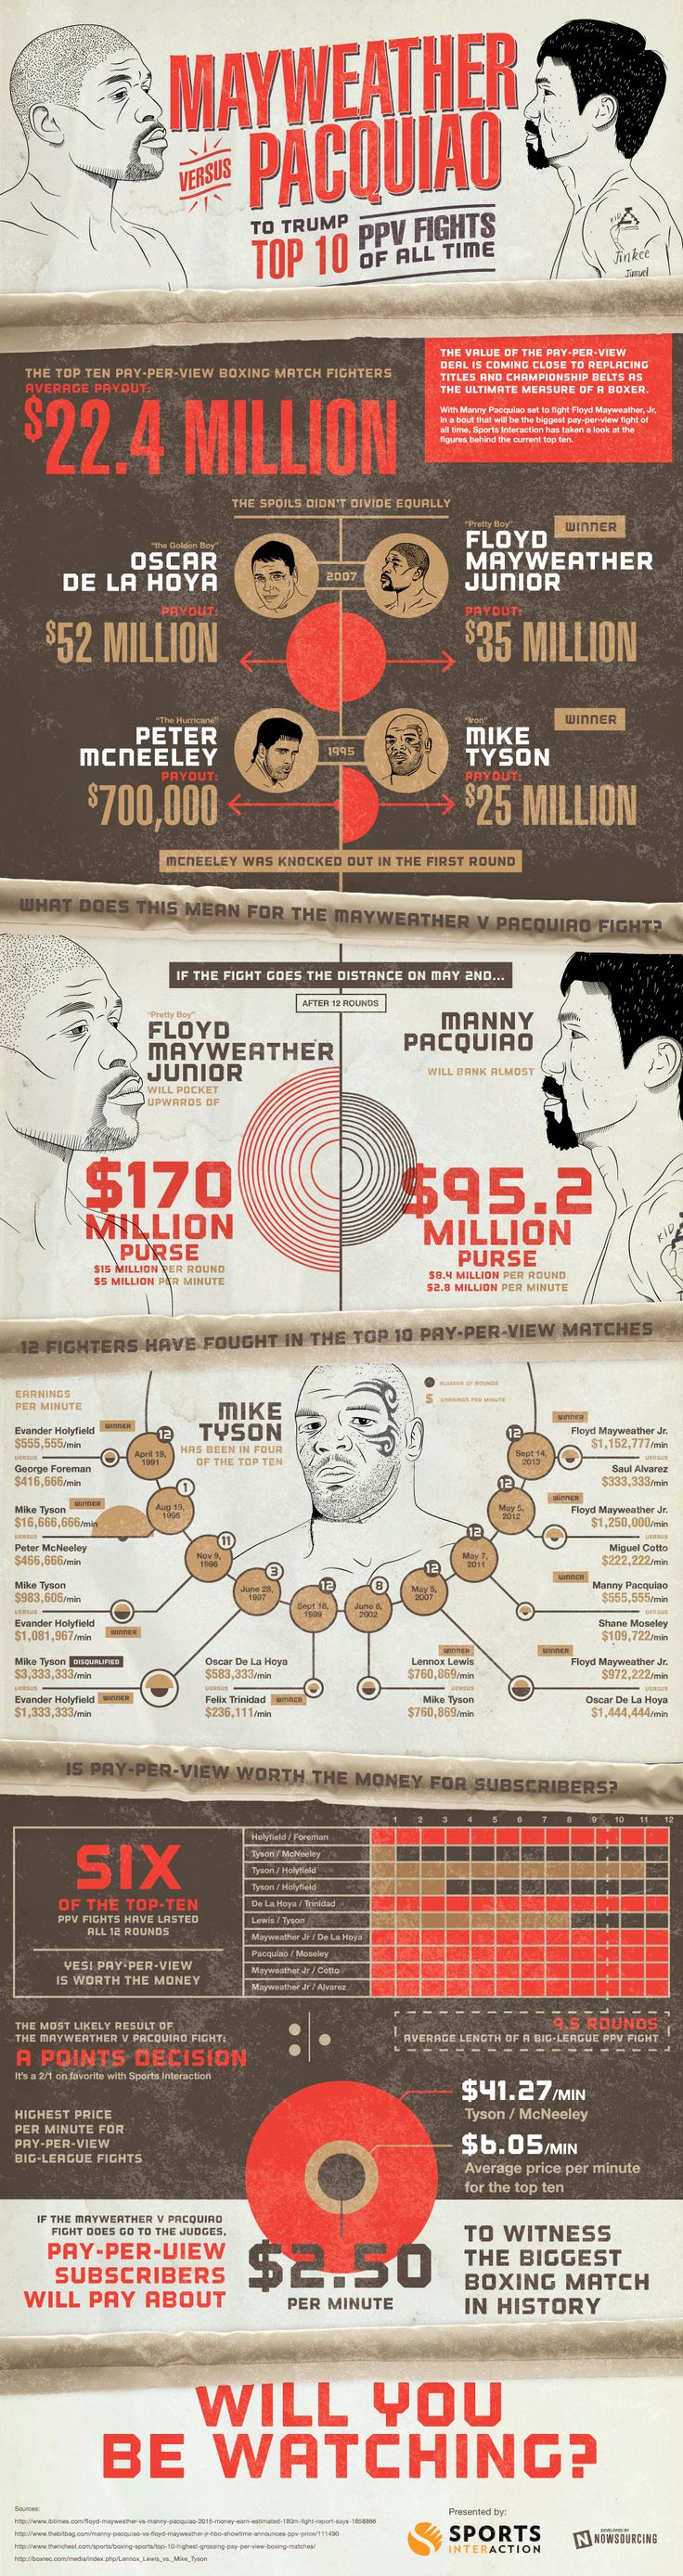 #Mayweather vs #Pacquiao #infographic #Sports Mayweather is a brilliant business man I give him that !